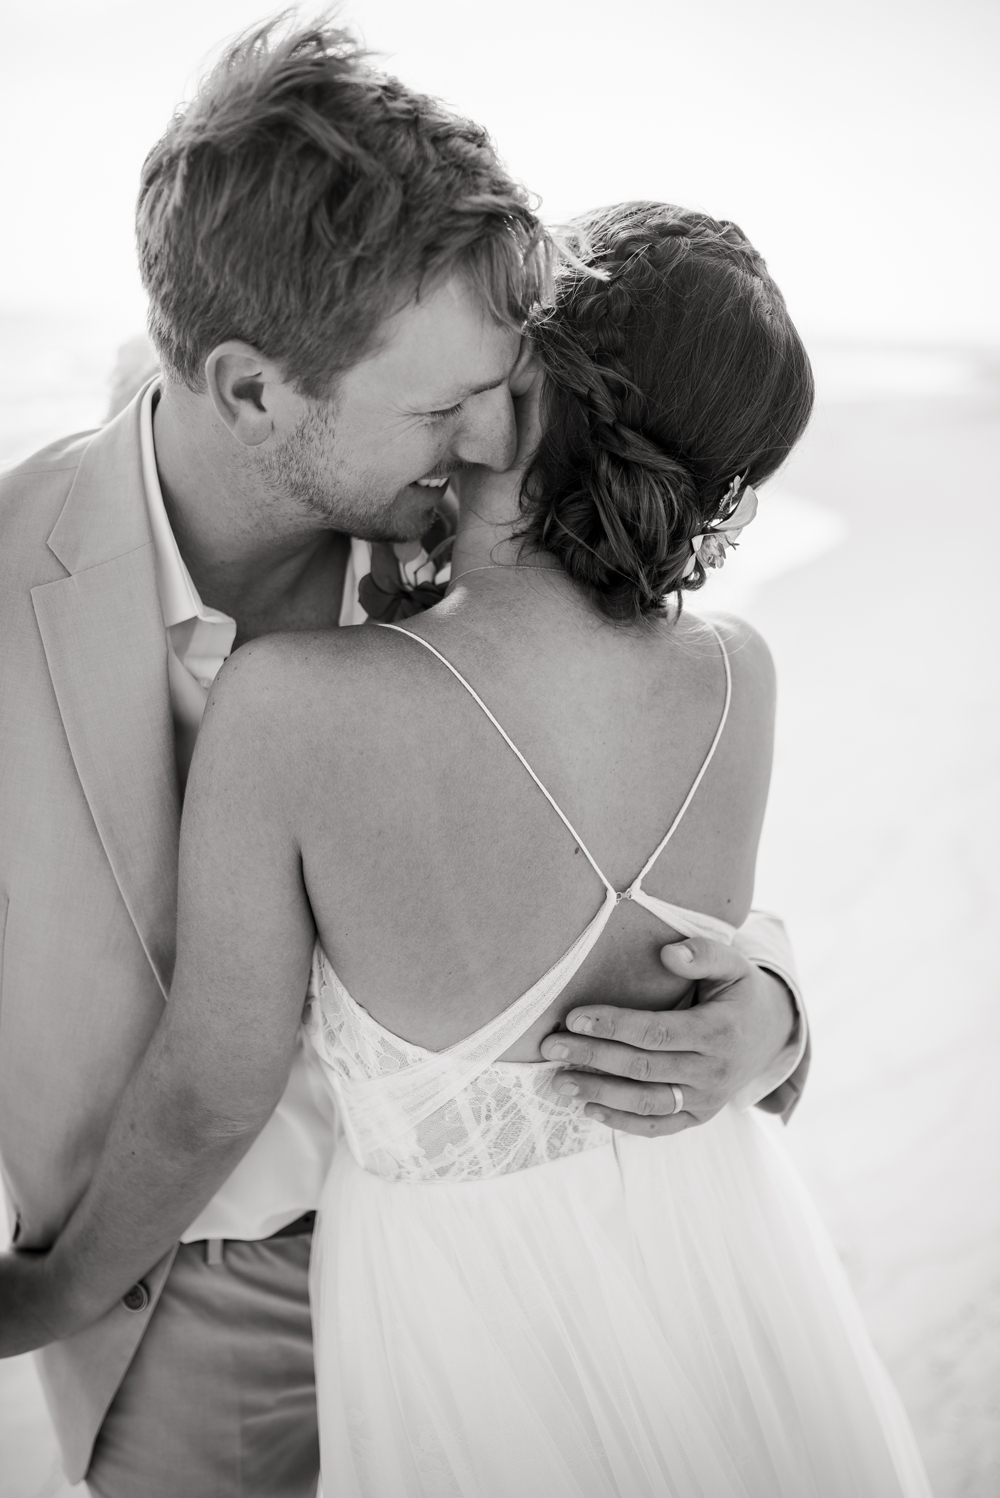 florida-wedding-photographer-kiersten-grant-87.jpg